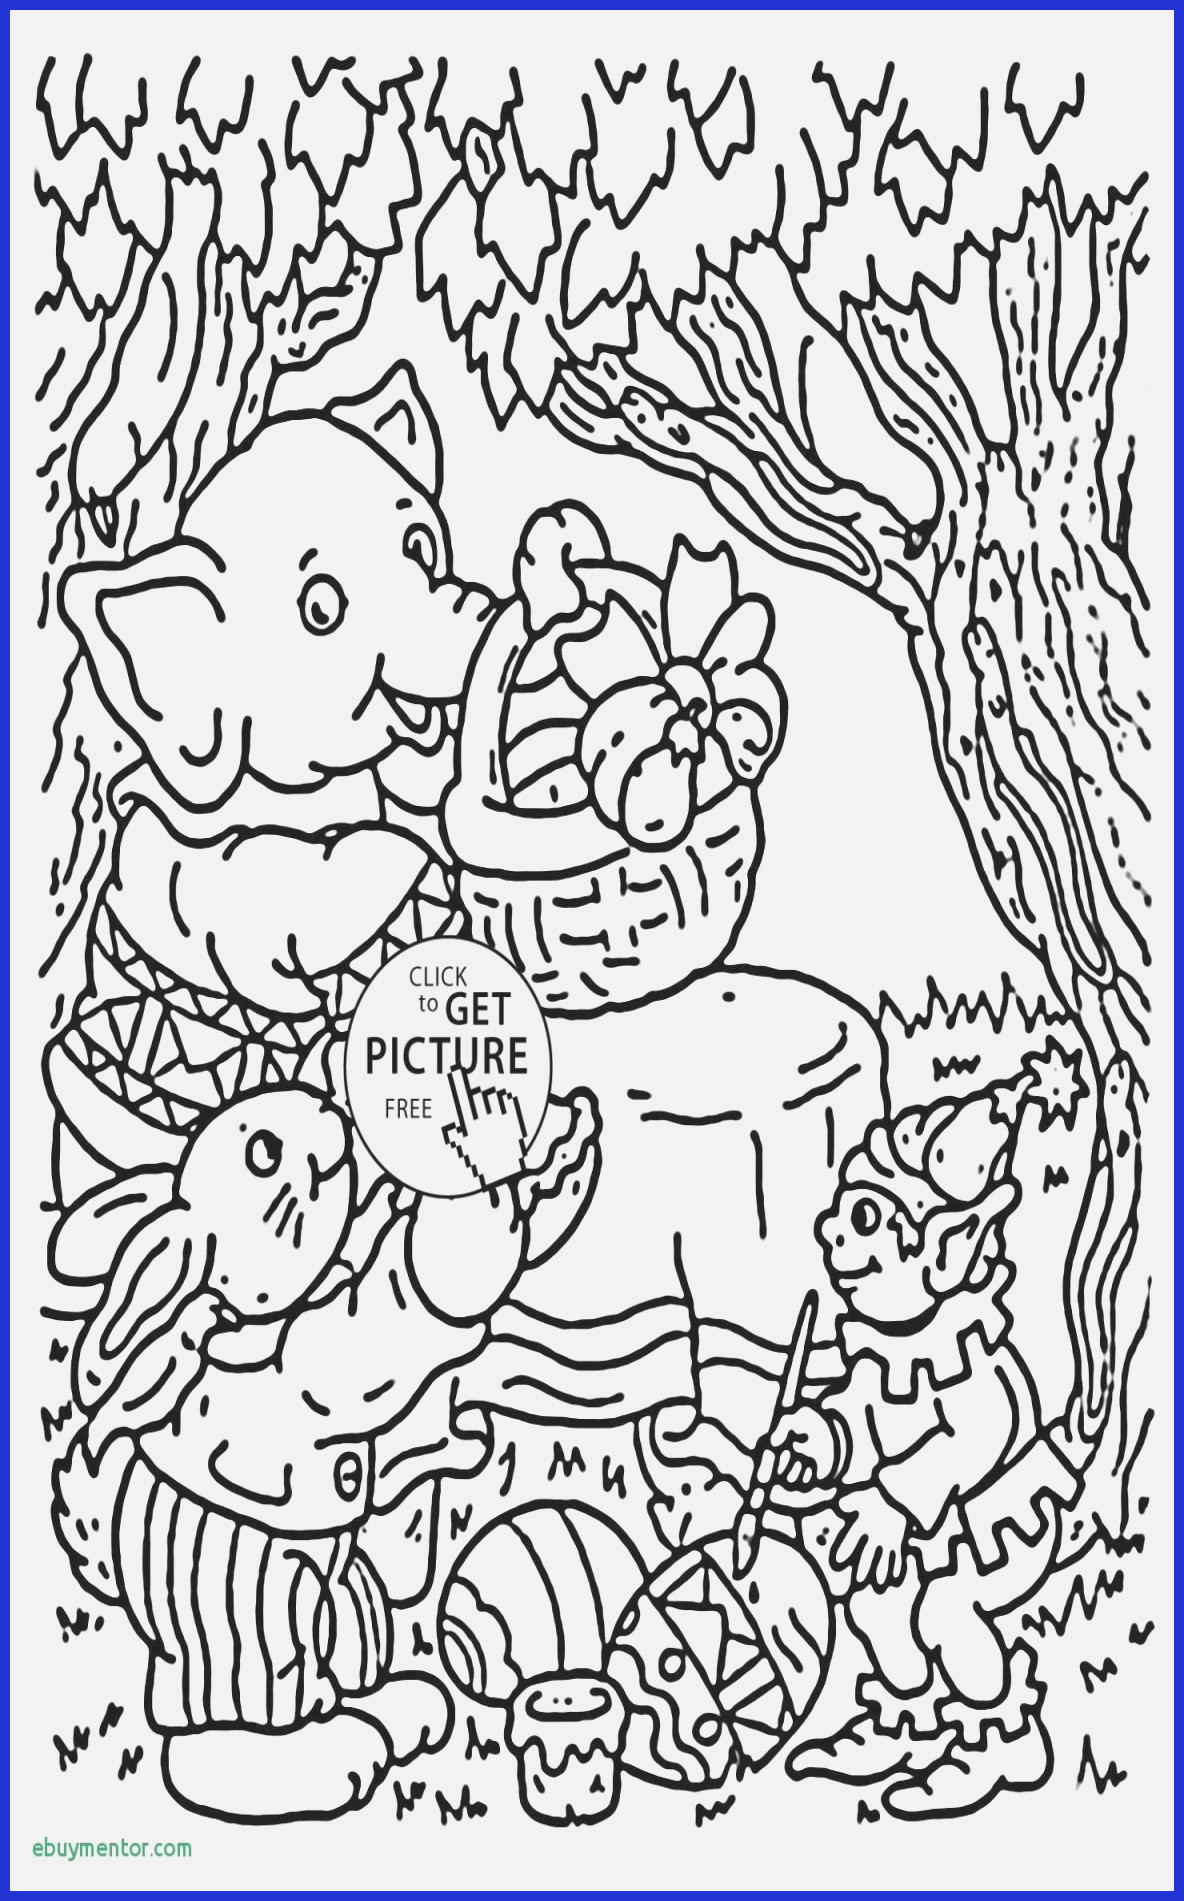 Word Search Coloring Pages To Print Coloring Ideas Dental Coloring Pages Word Search Puzzles For Kids